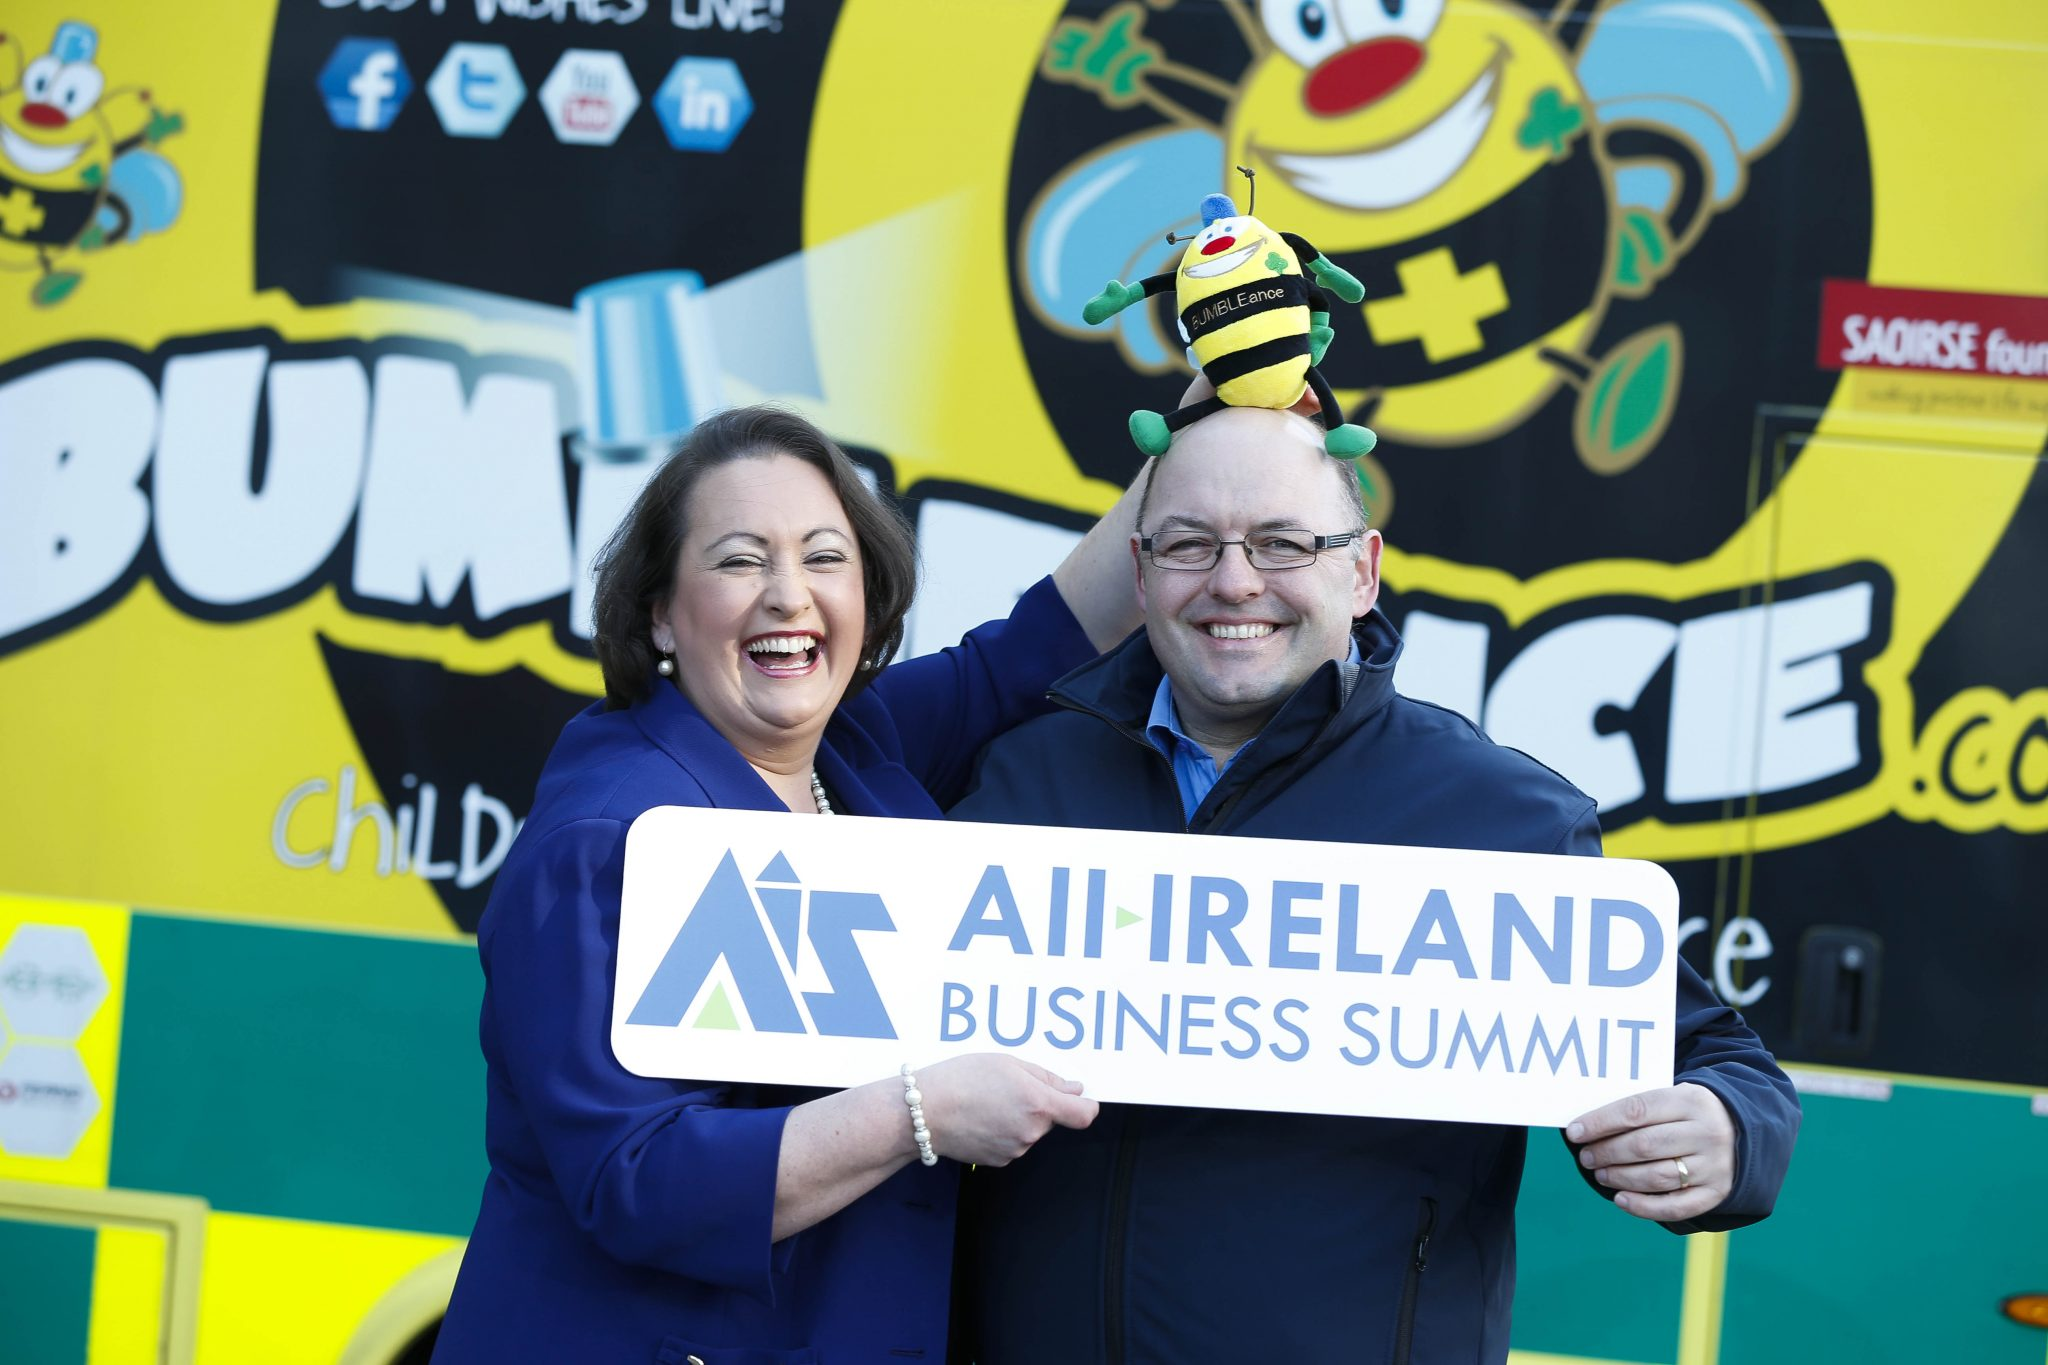 bumbleance-all-ireland=business-summit-dublin